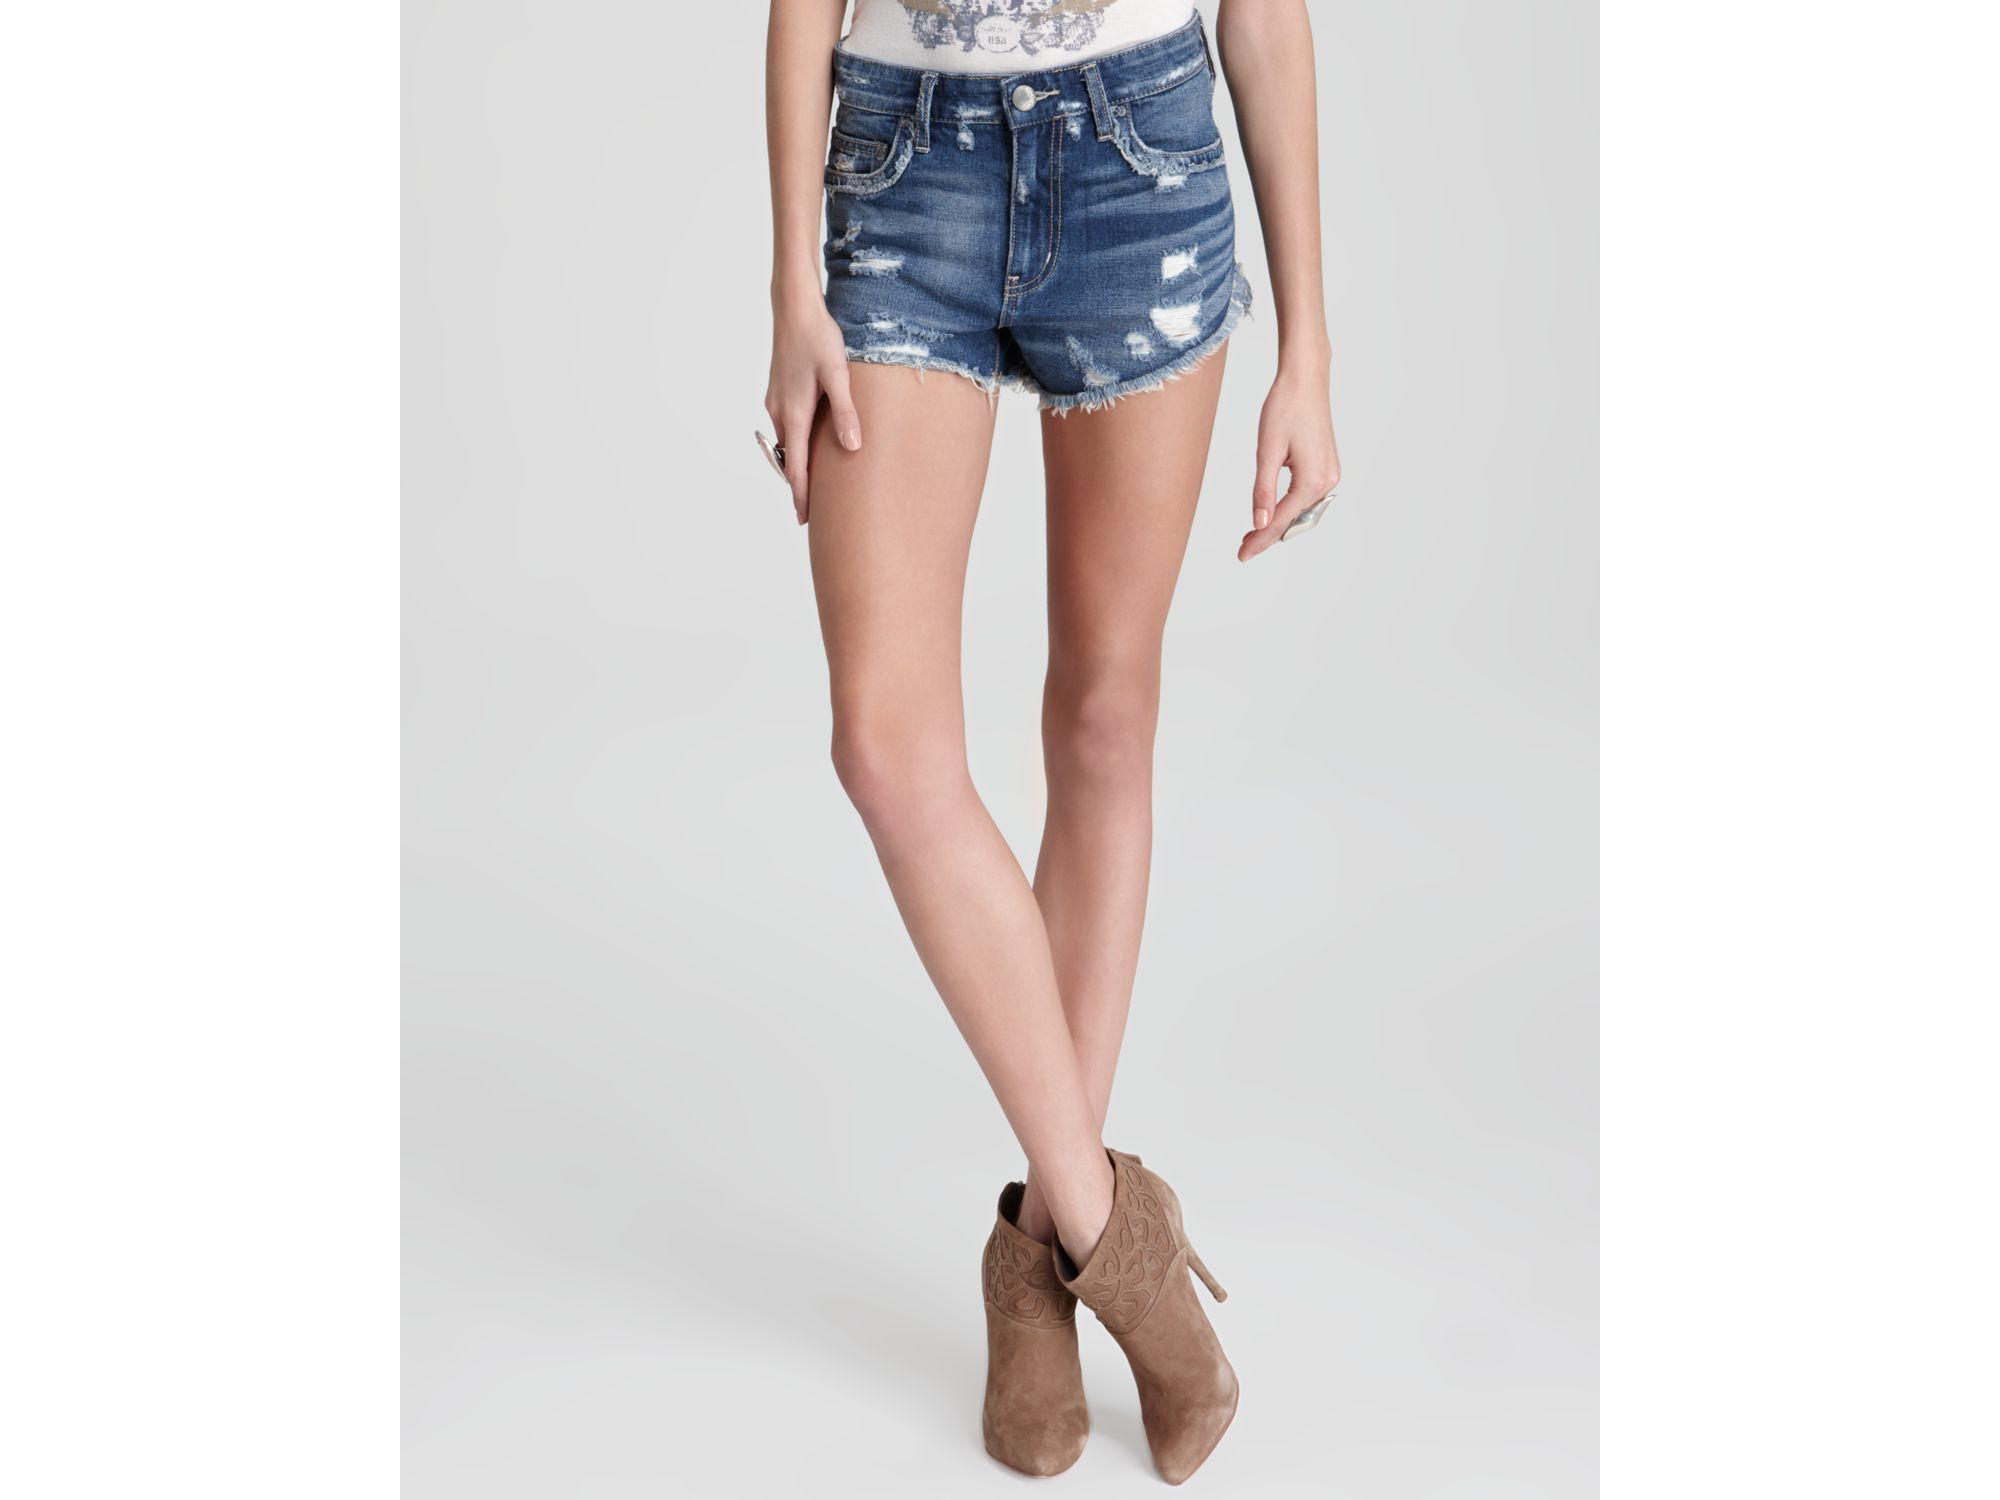 70cca7bde1 Free People Rugged Ripped Denim Shorts in Blue - Lyst